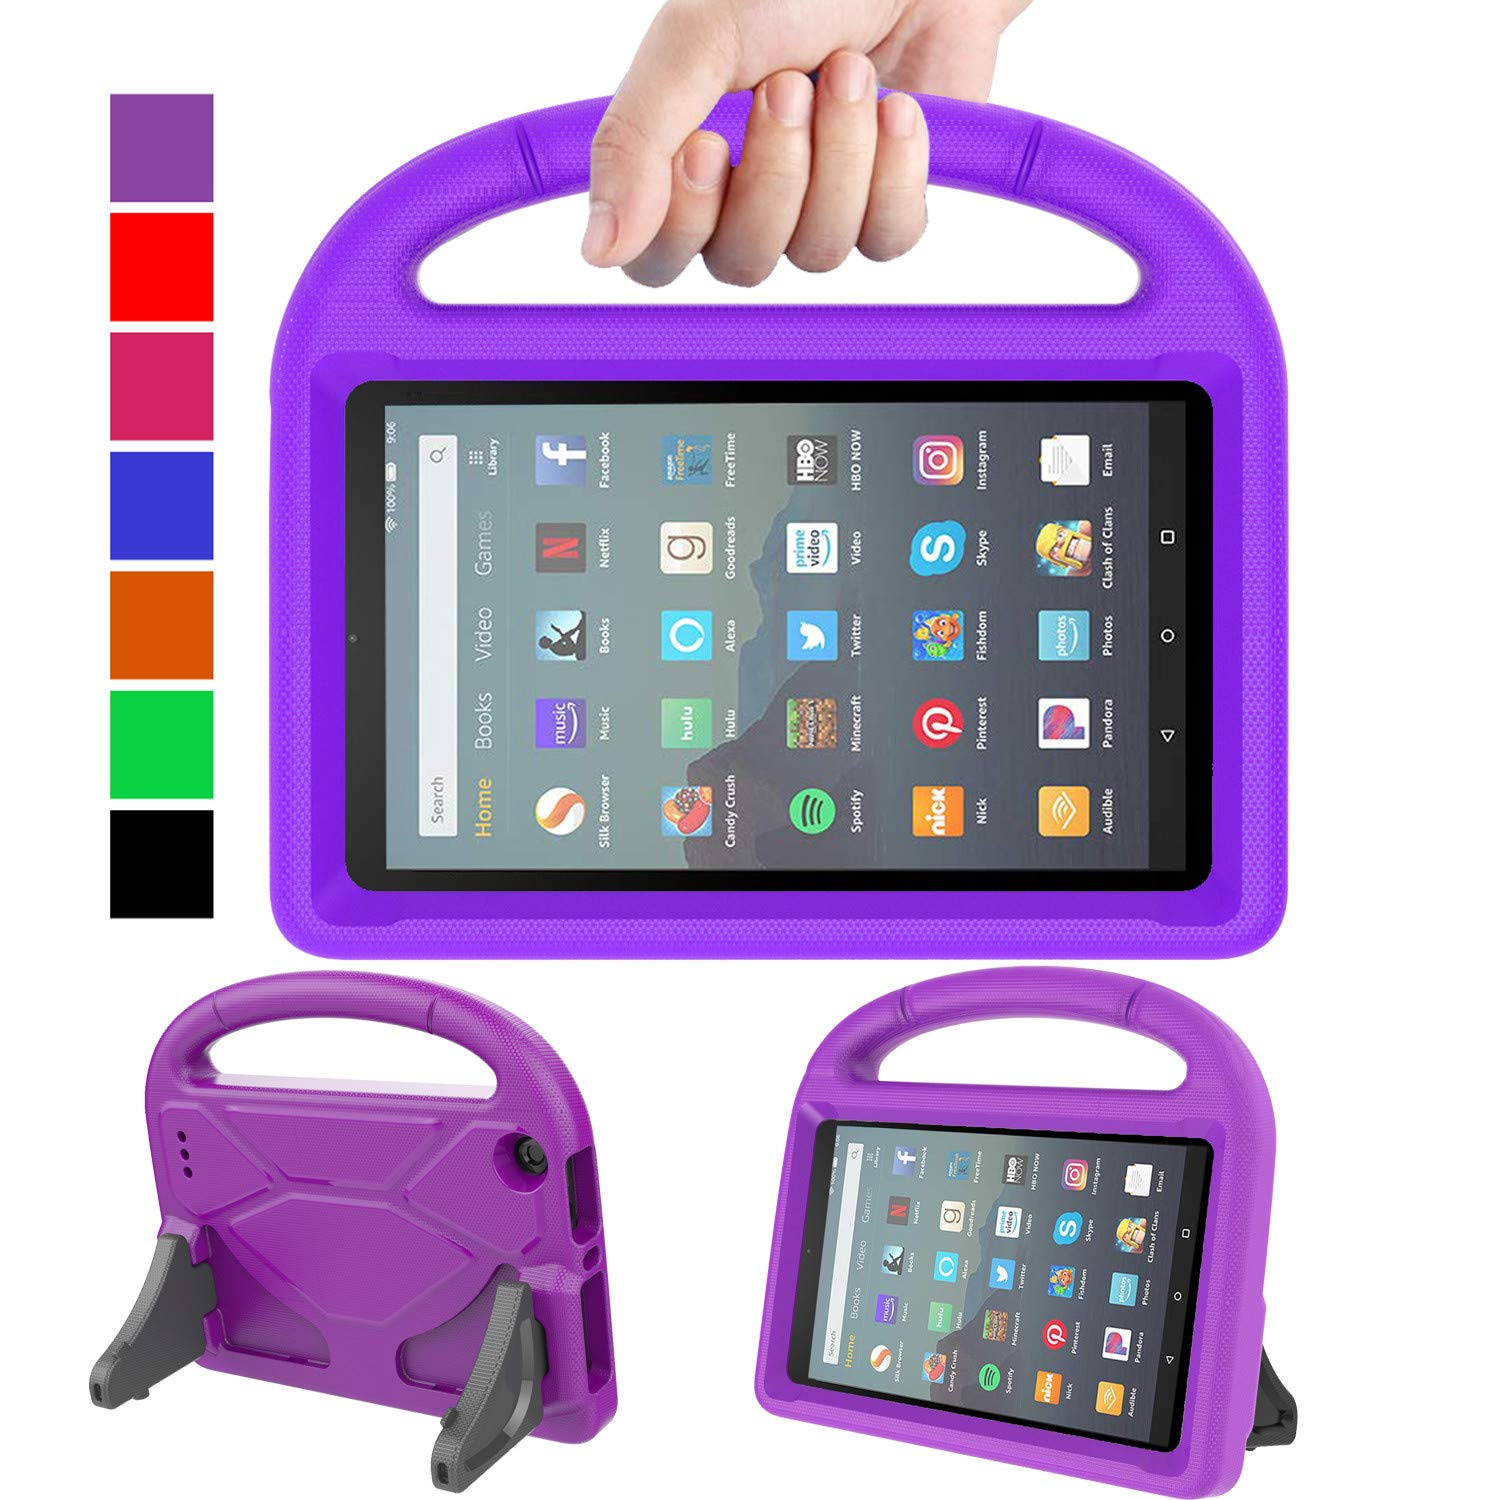 "MENZO Kids Case for All-New Fire 7 Tablet (9th Generation - 2019 Release), Light Weight Shockproof Handle Stand Kids Friendly Case for Amazon Fire 7 2019 and 2017 (7"" Display), Purple"